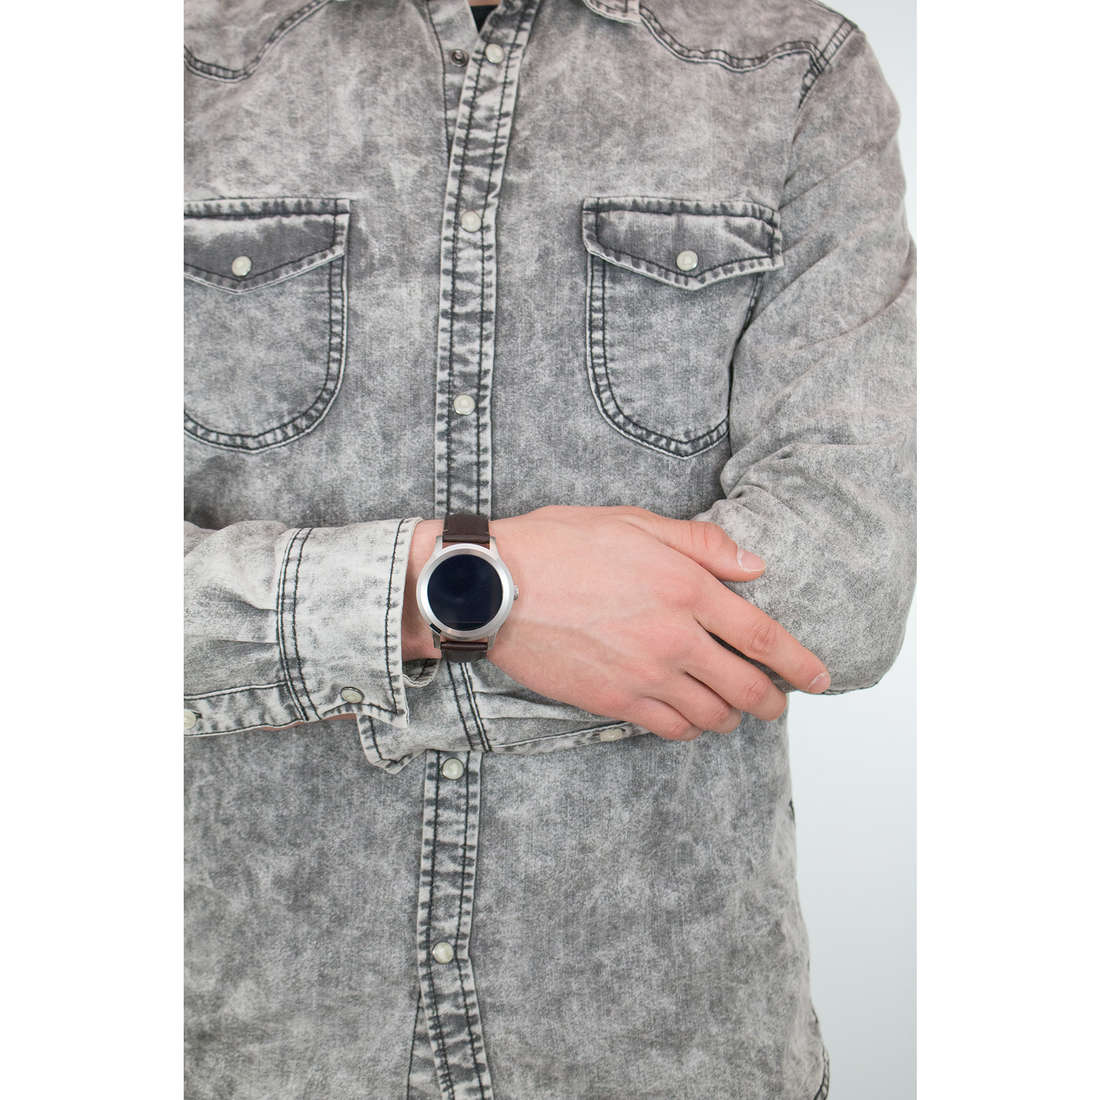 Fossil Smartwatches Q Founder uomo FTW2119 indosso